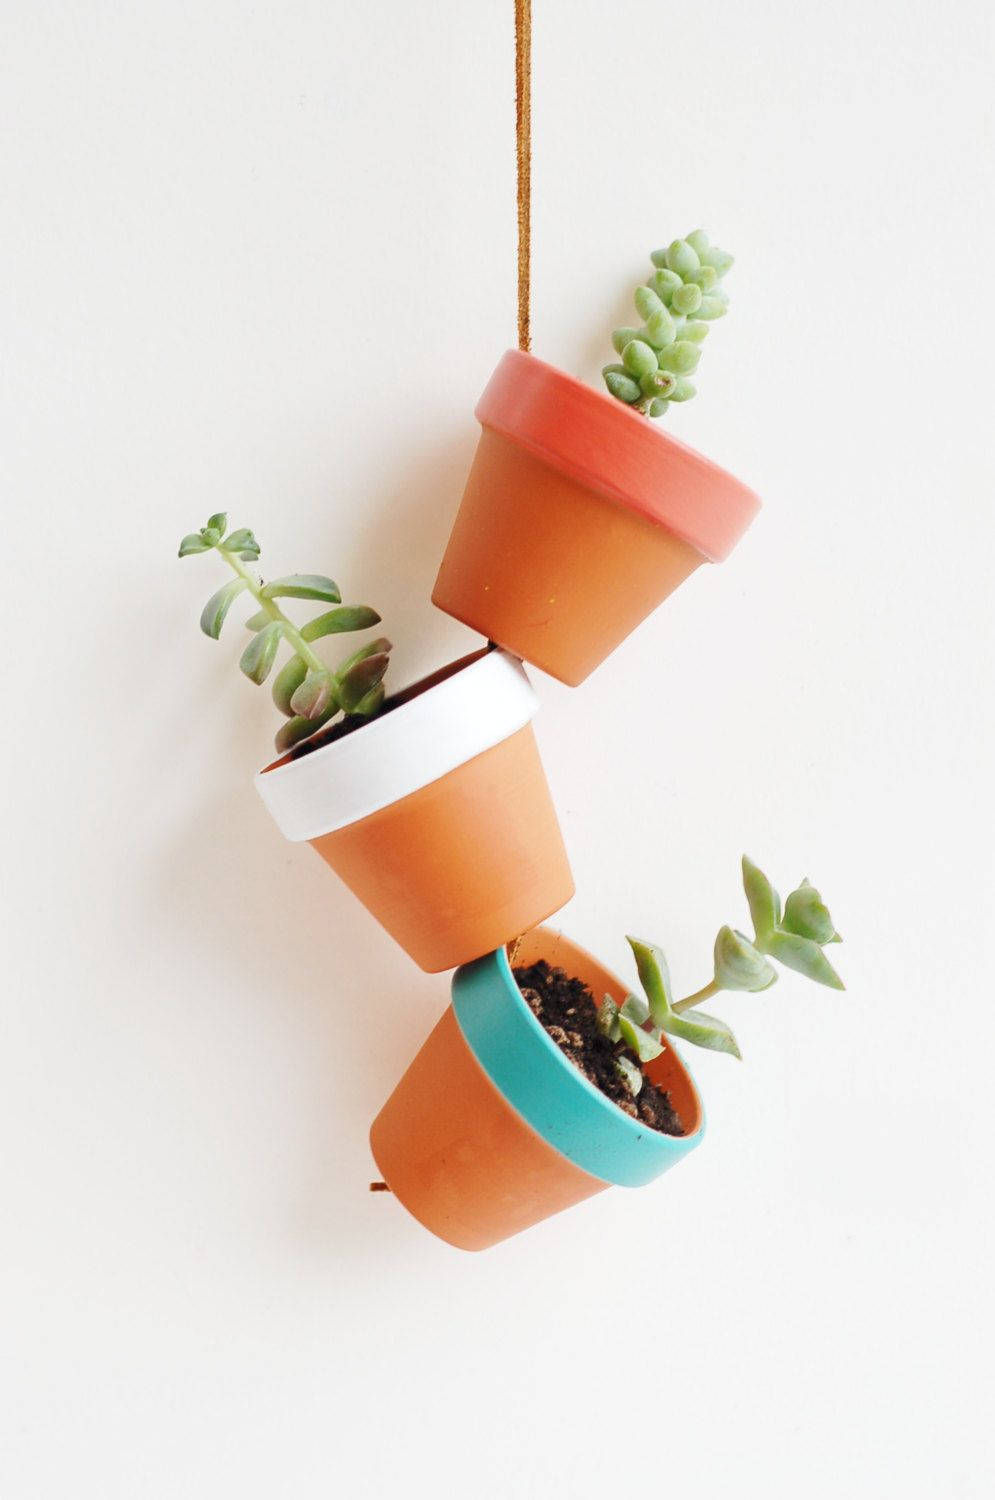 Desert Colors Tiny Hand Painted Terracotta Planter Hanging 2 Mini Clay Pots Terra Cotta Air Plant Home Deco Clay Pots Terra Cotta Pot Crafts Clay Pot Crafts